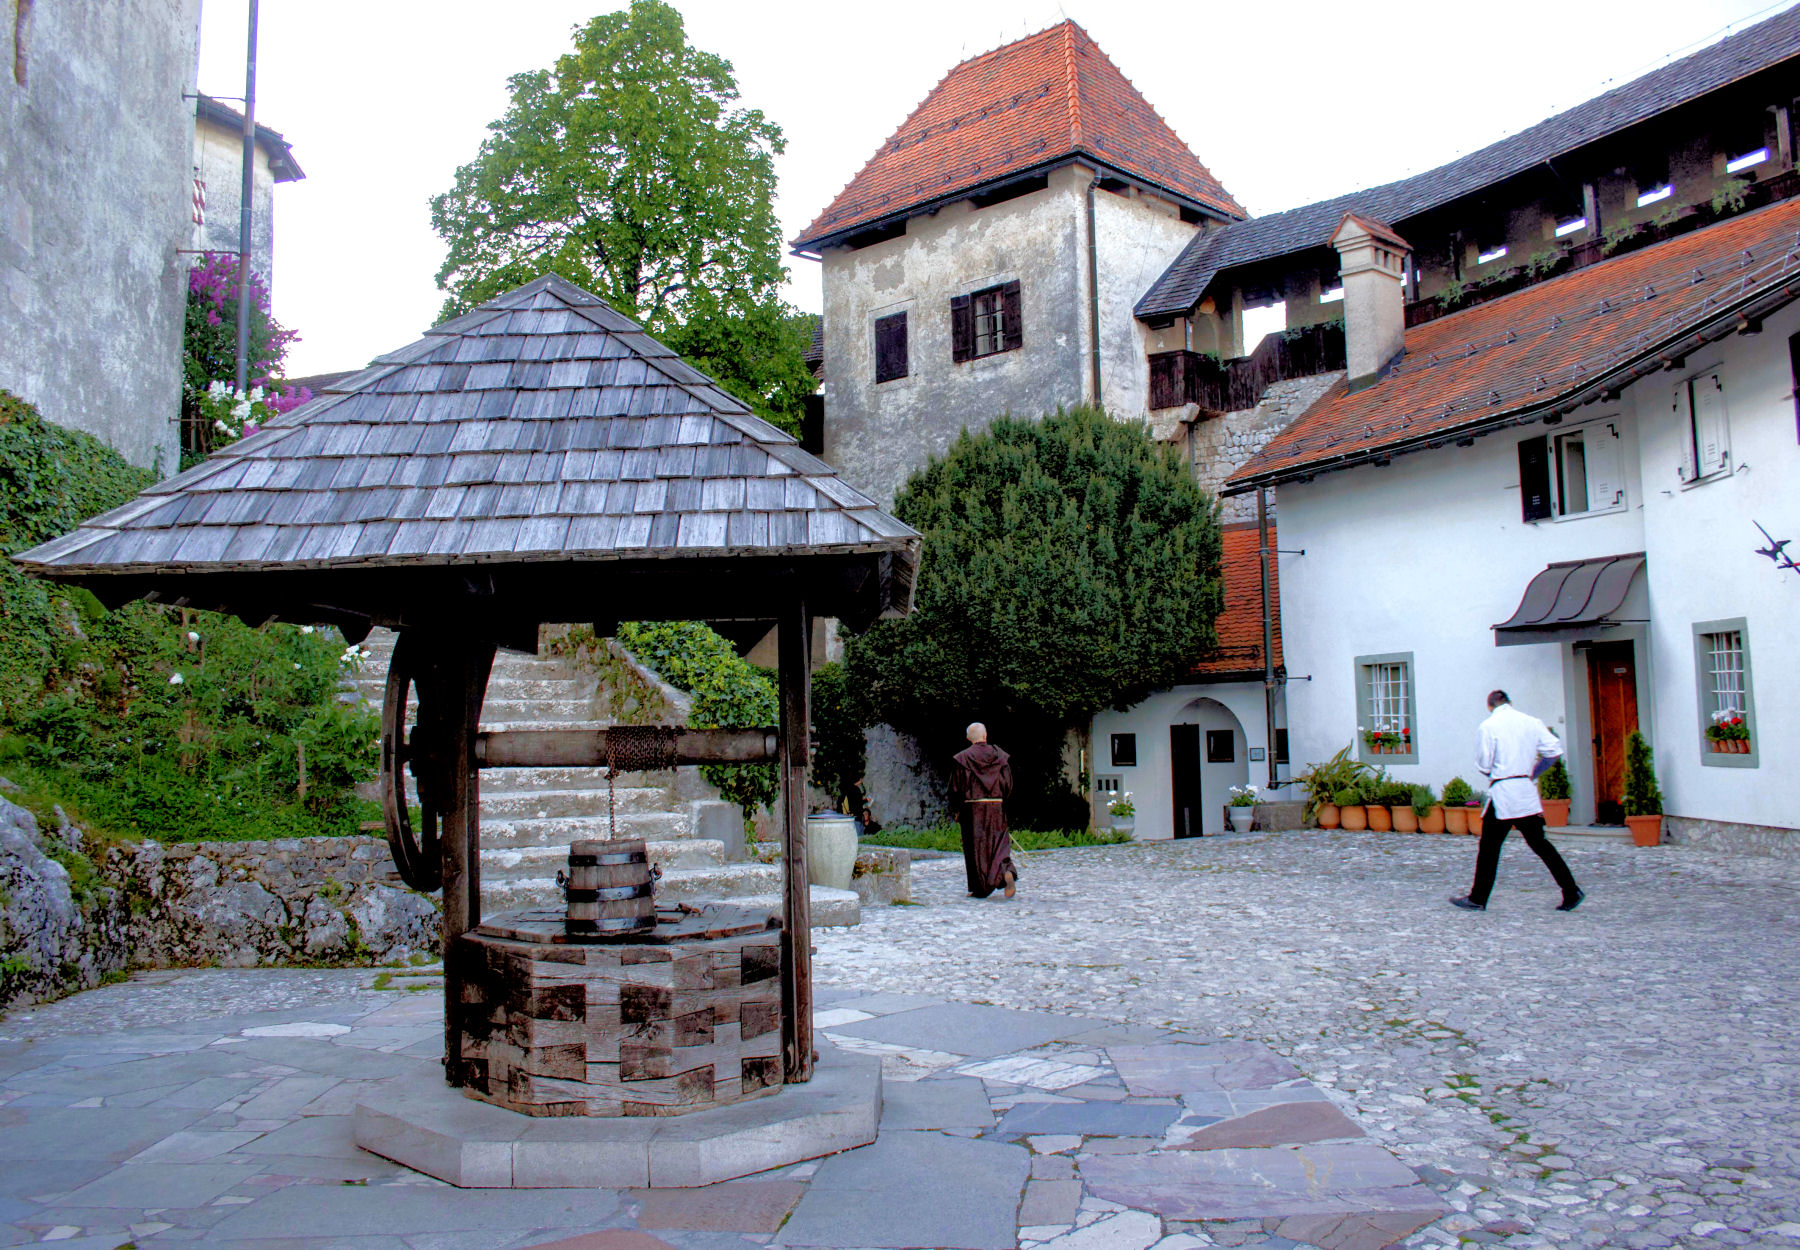 The old well at Bled Castle